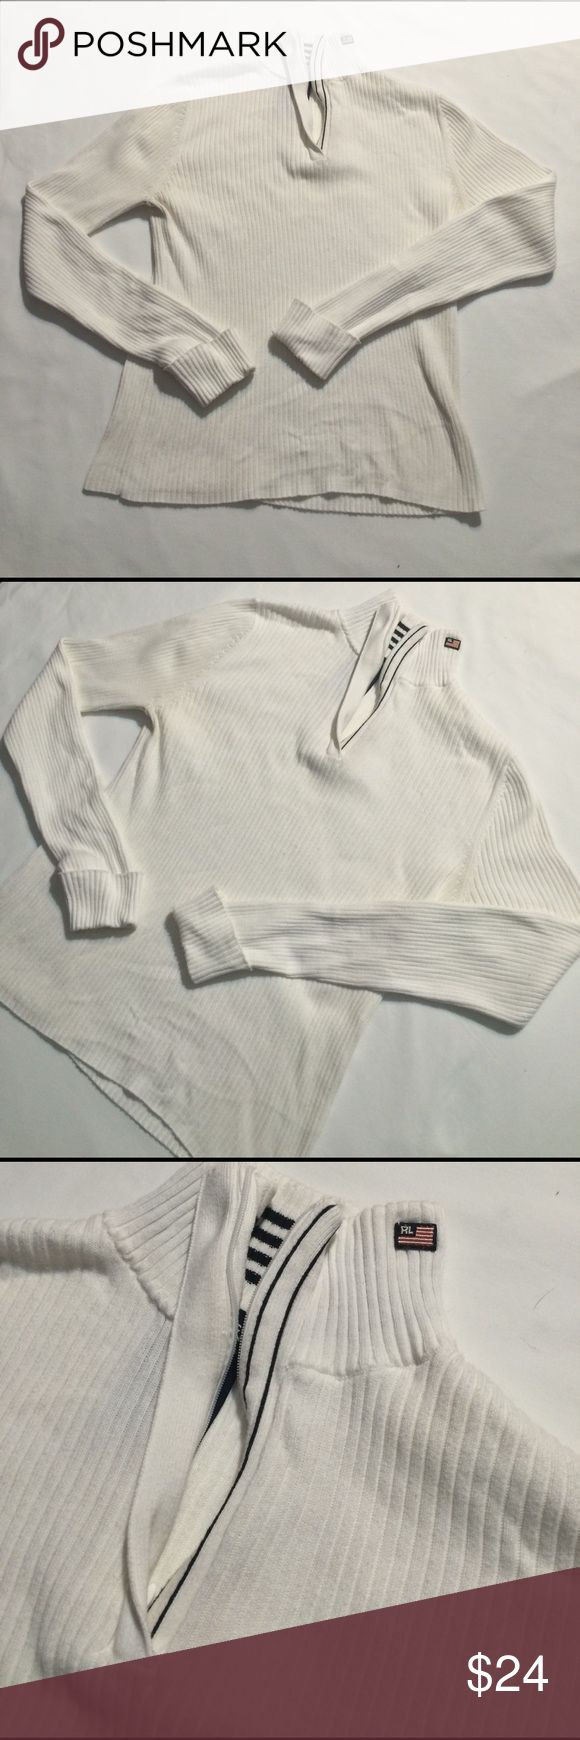 Classic polo jeans co women's quarter zip! Sz. L Amazing almost vintage polo jeans co quarter zip for women's! Sz. L fits a M! It great condition, small red marks on back but not noticeable! Condition: 8/10 Sz. L Polo by Ralph Lauren Sweaters Cowl & Turtlenecks